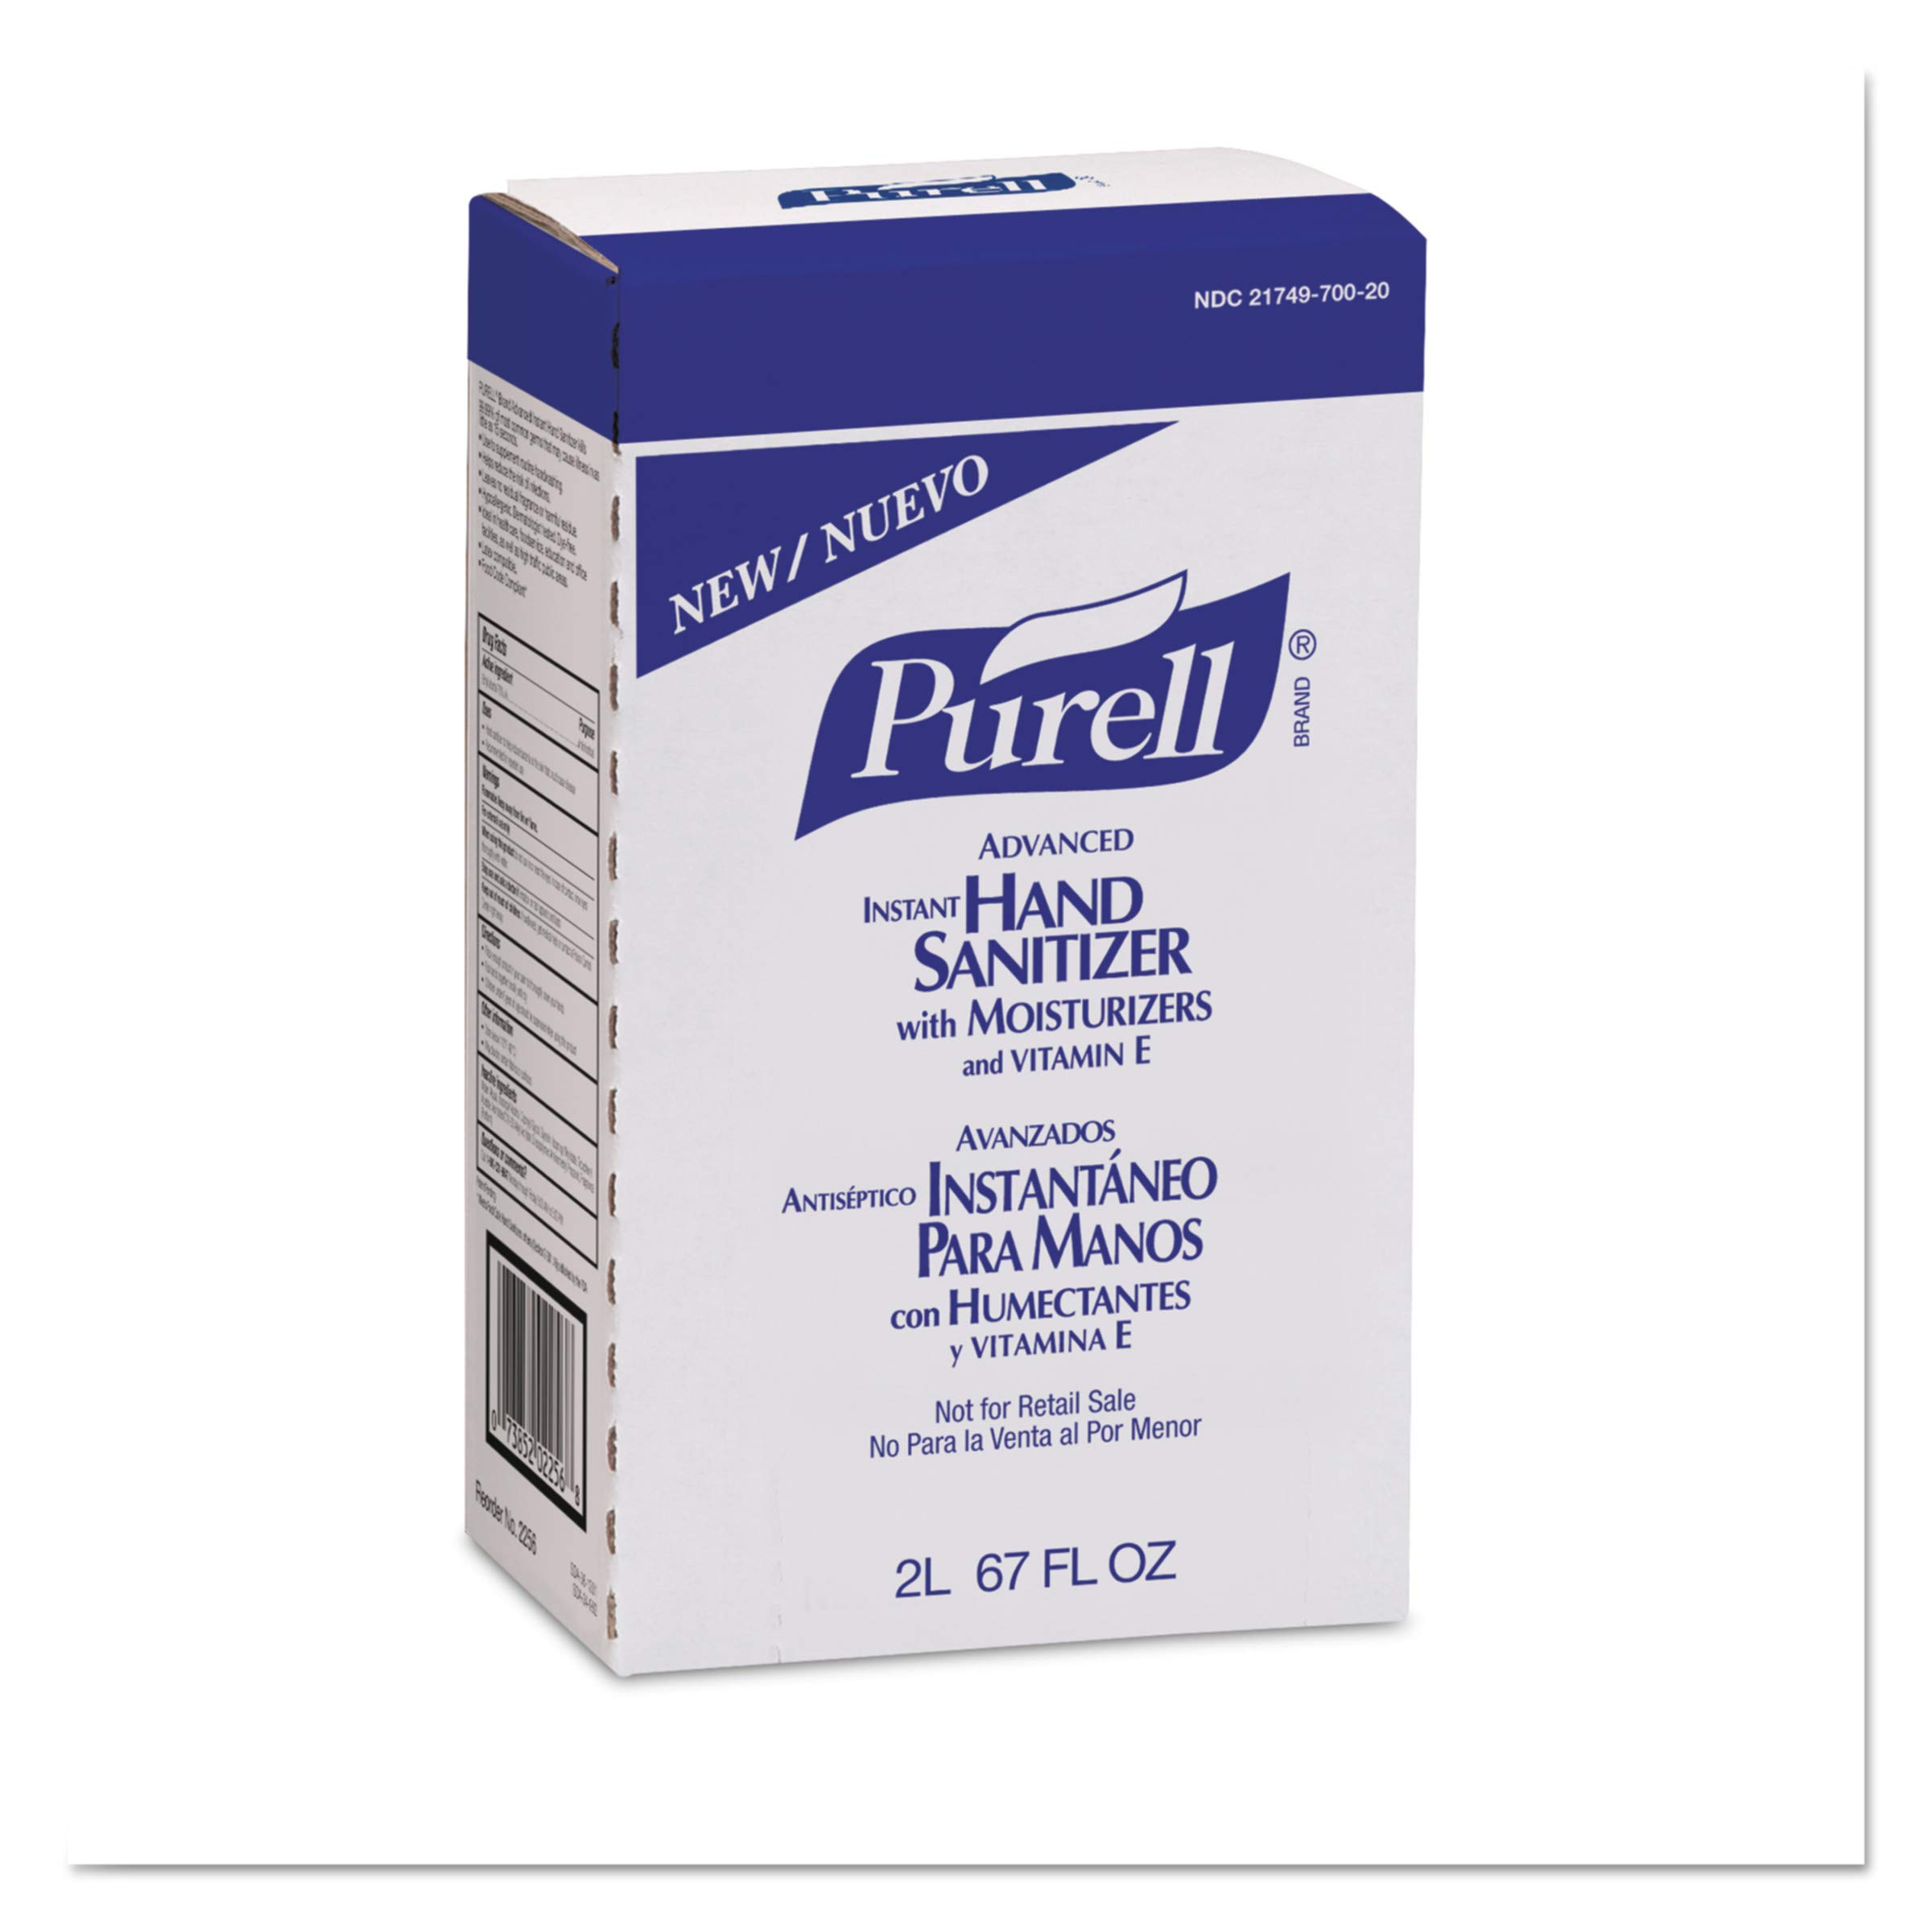 PURELL 225604 Advanced Instant Hand Sanitizer, 2000mL Refill (Case of 4)